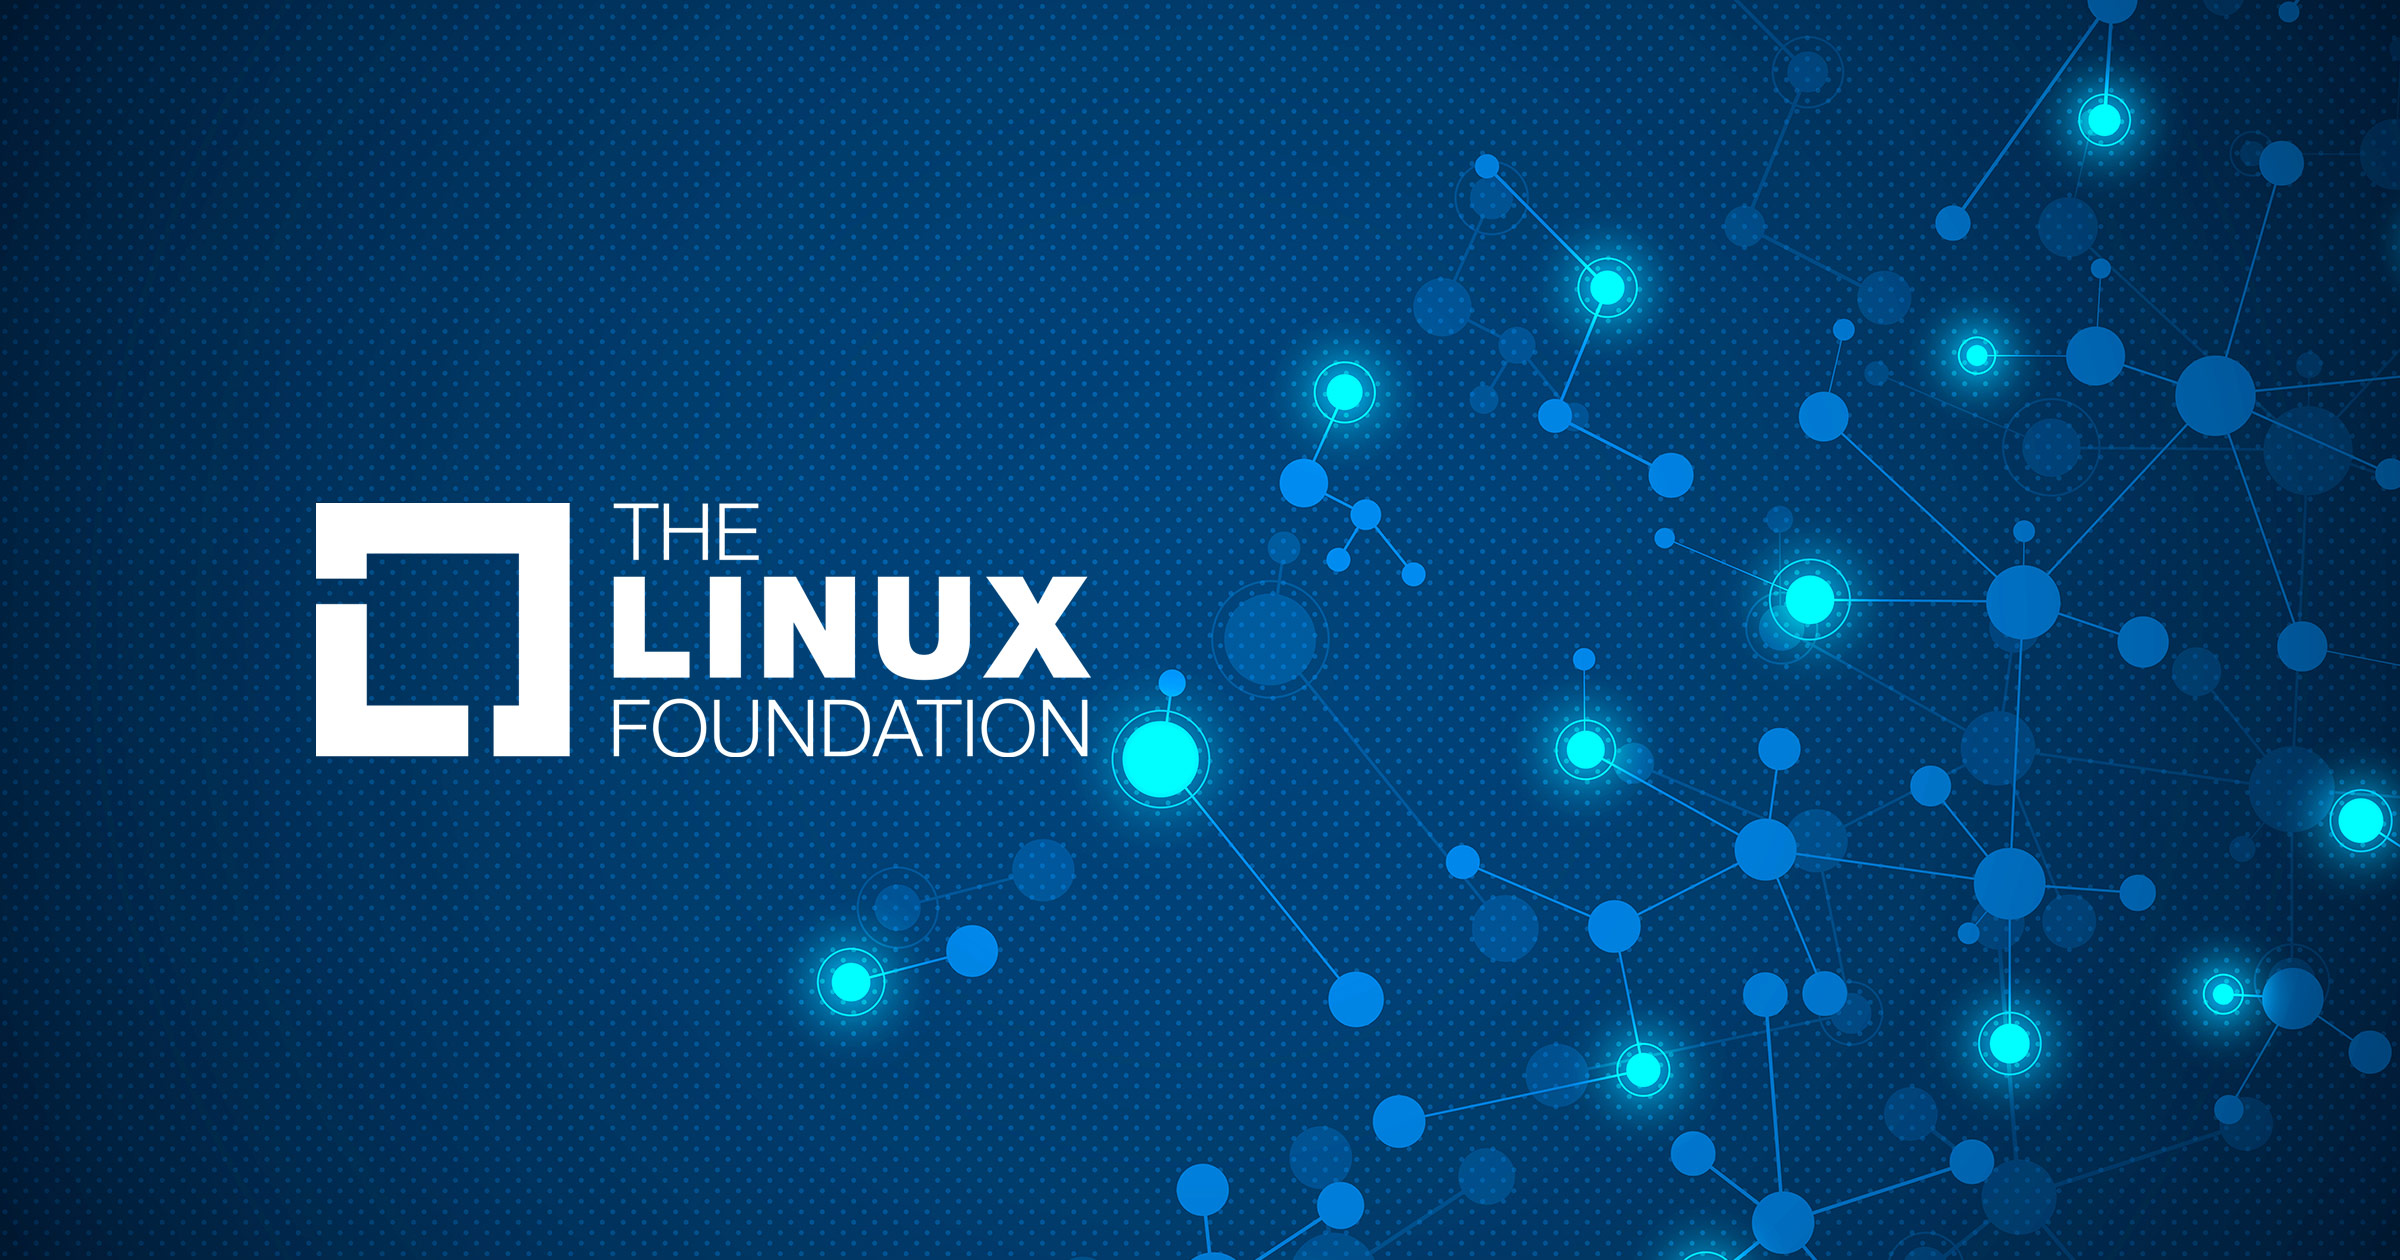 Linux Foundation Blog Post Abstract Graphic